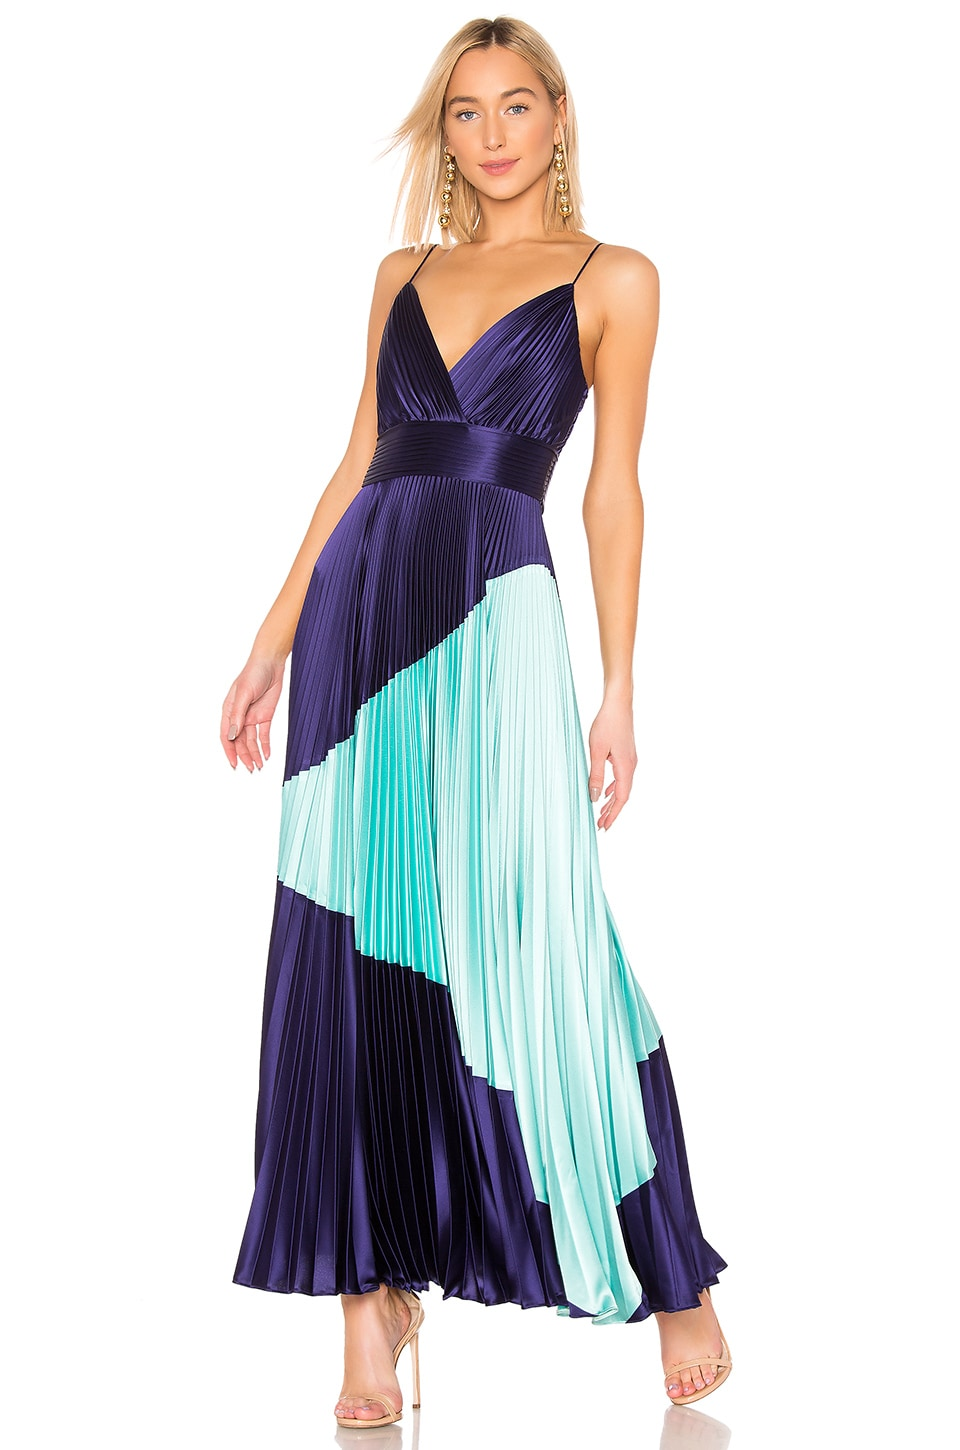 Jill Jill Stuart Dresses JILL JILL STUART PLEATED GOWN IN BLUE.